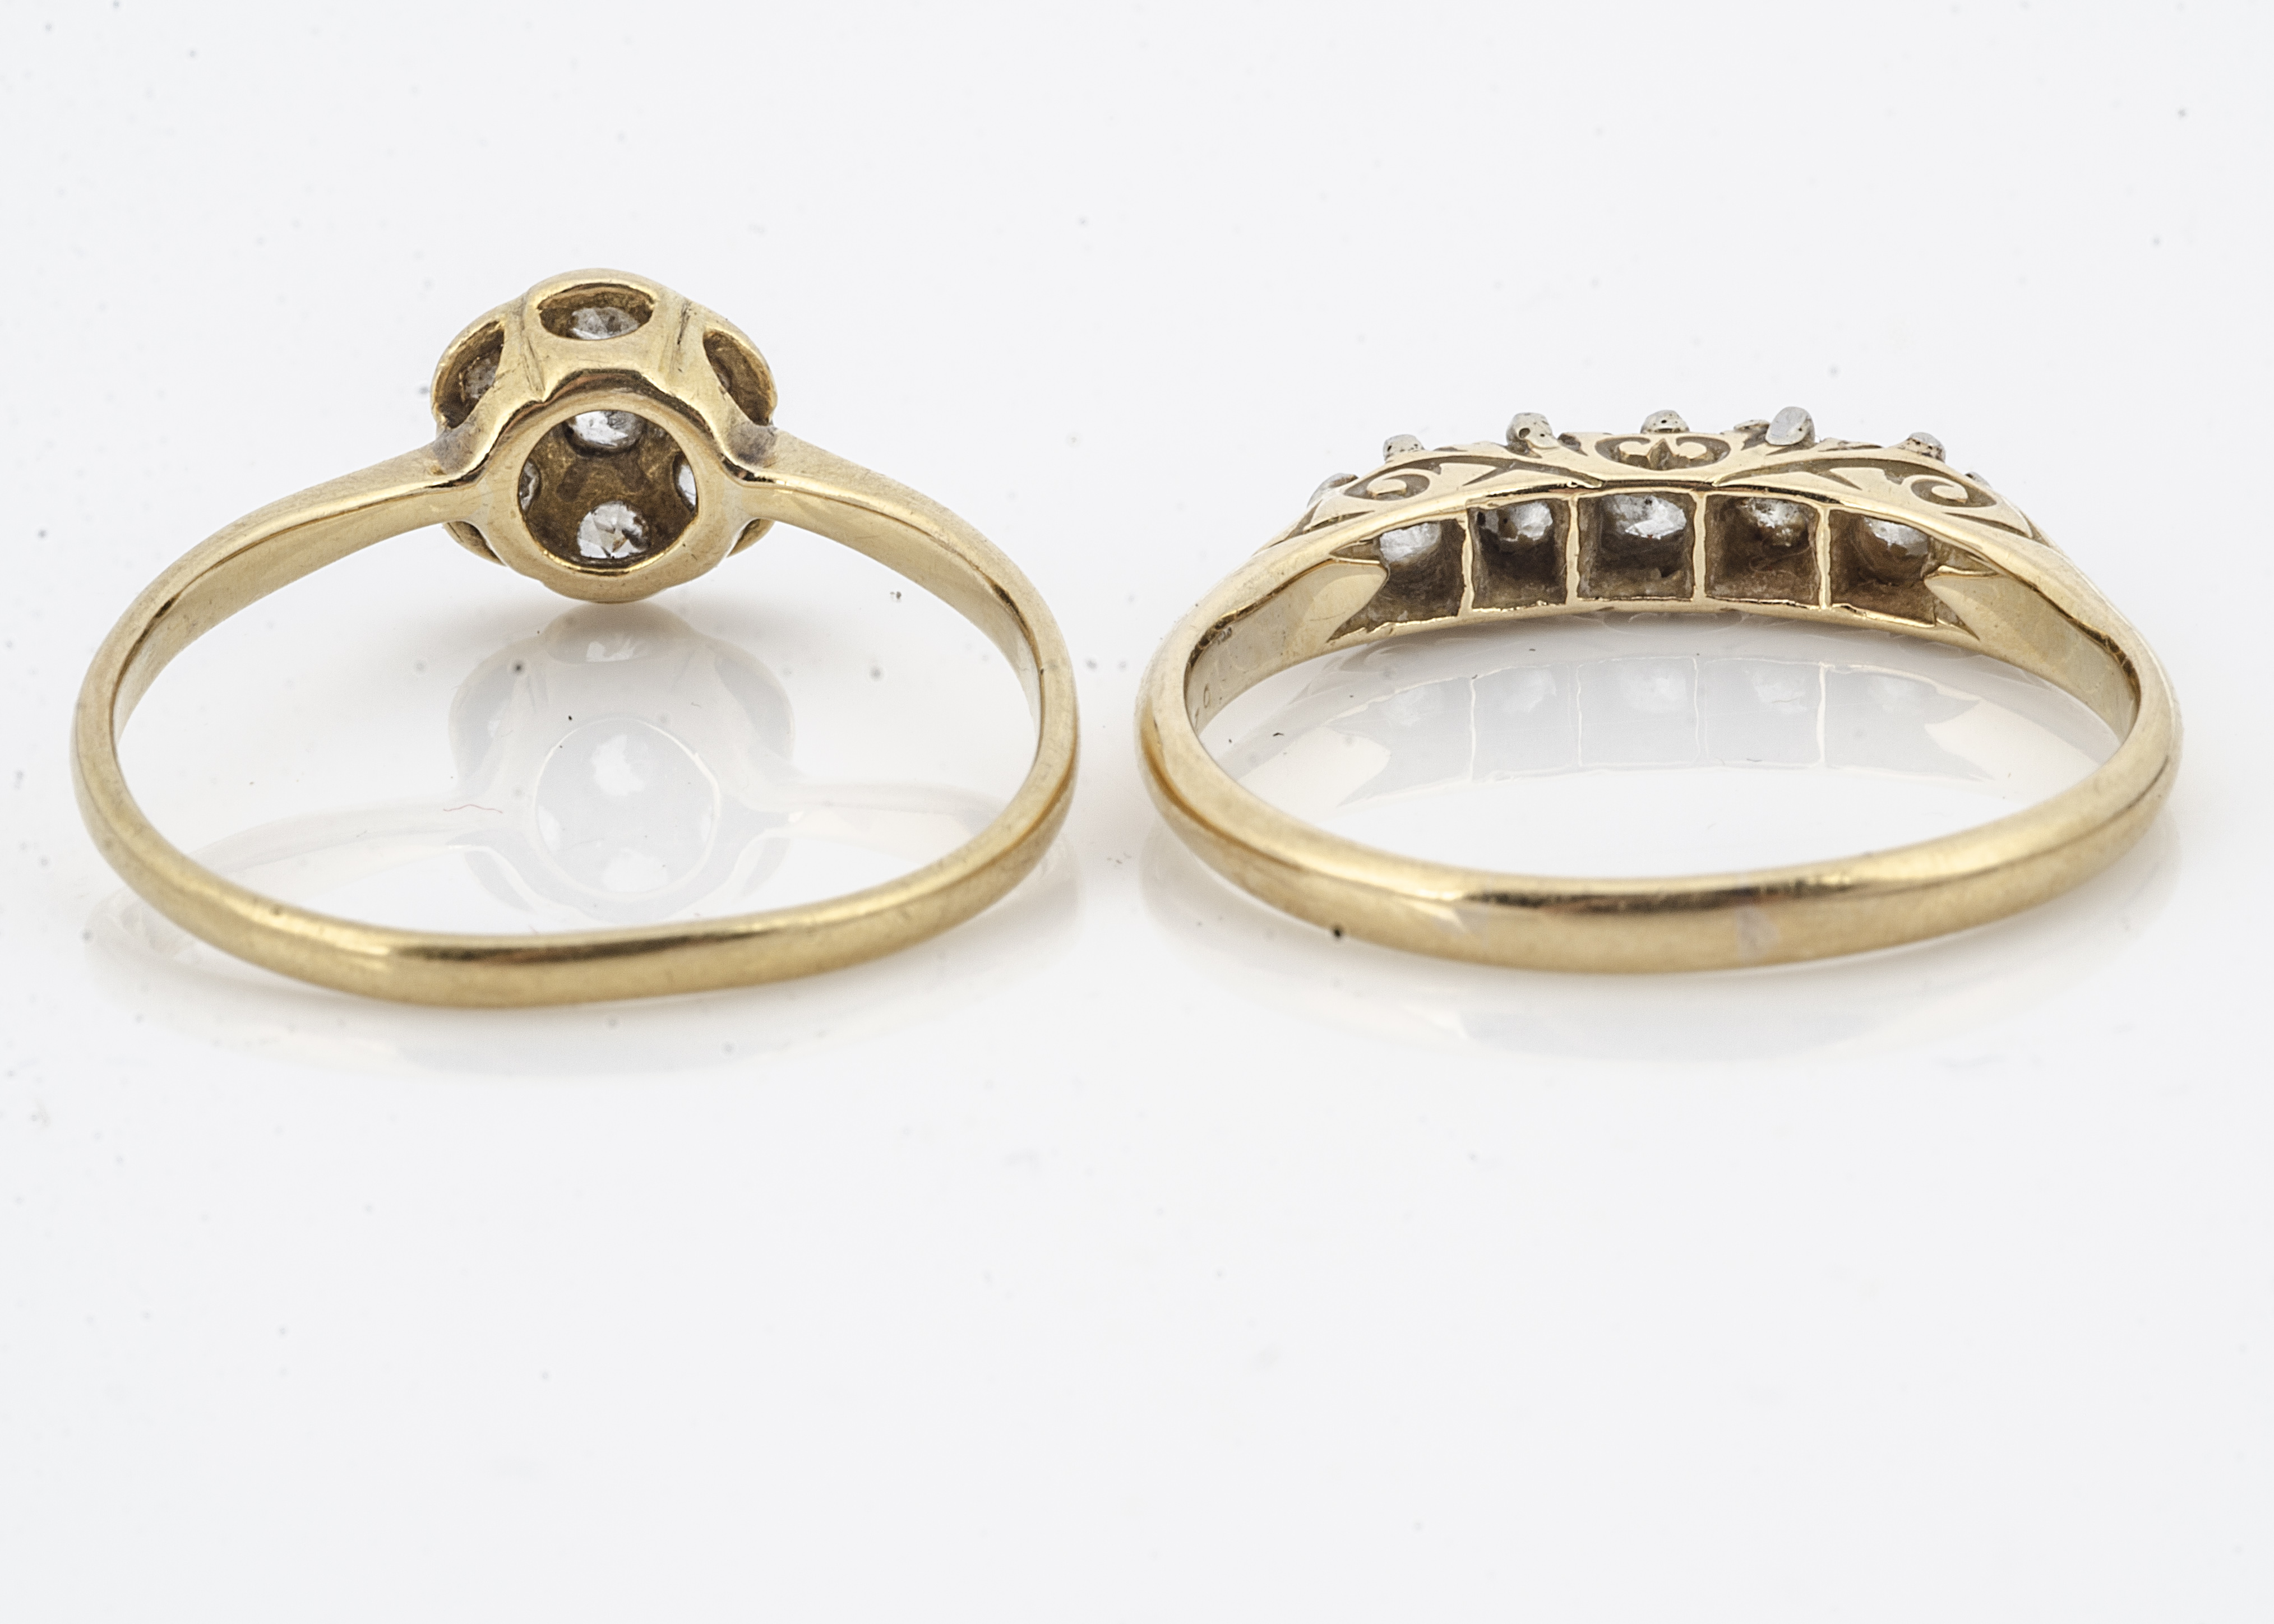 A five stone diamond dress ring, claw set eight cut diamonds in white metal on yellow gold shank - Image 2 of 2